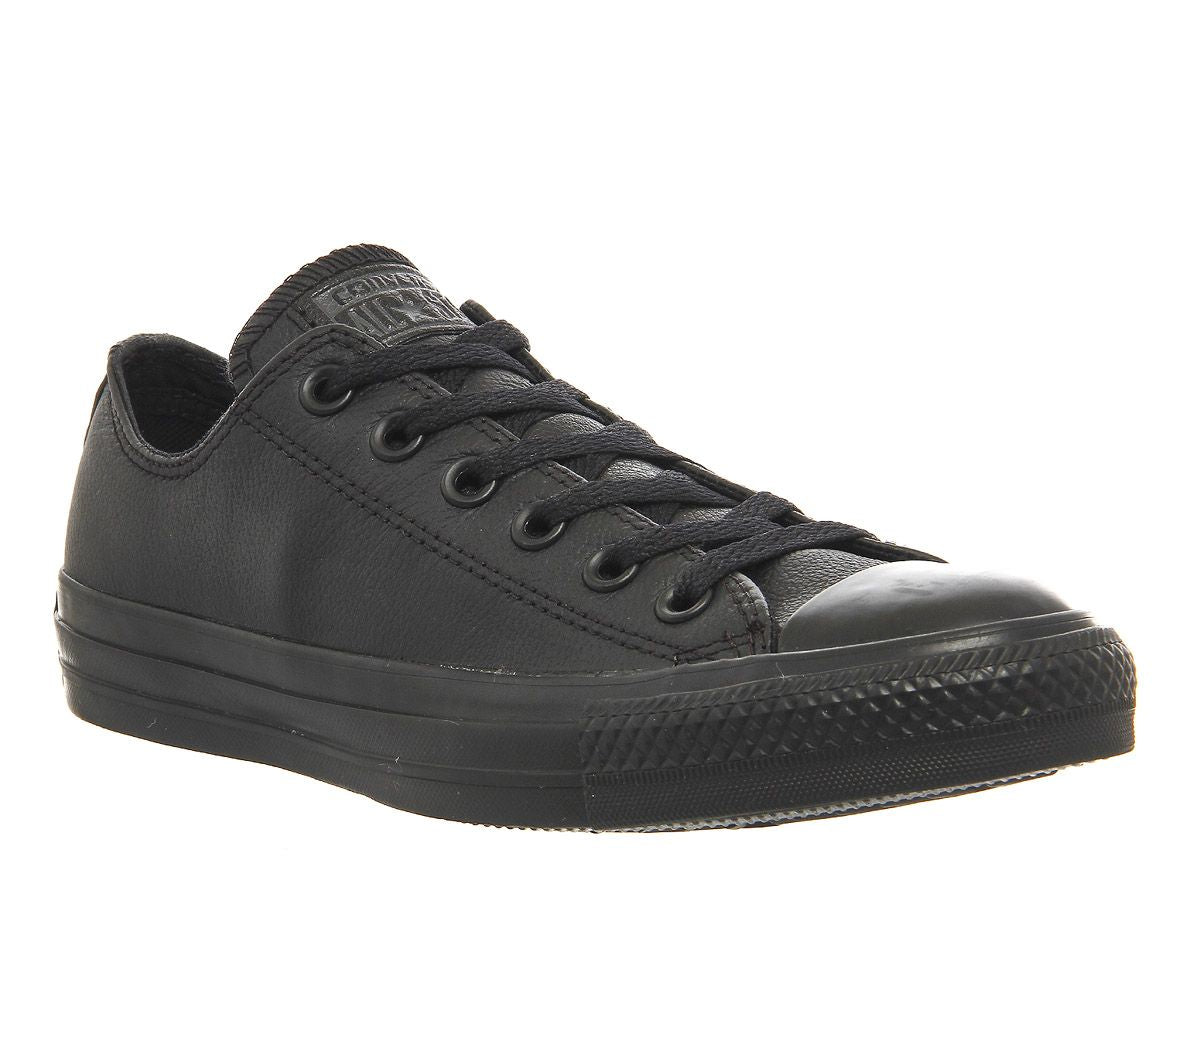 Unisex Converse All Star Low Leather Flash Black Mono